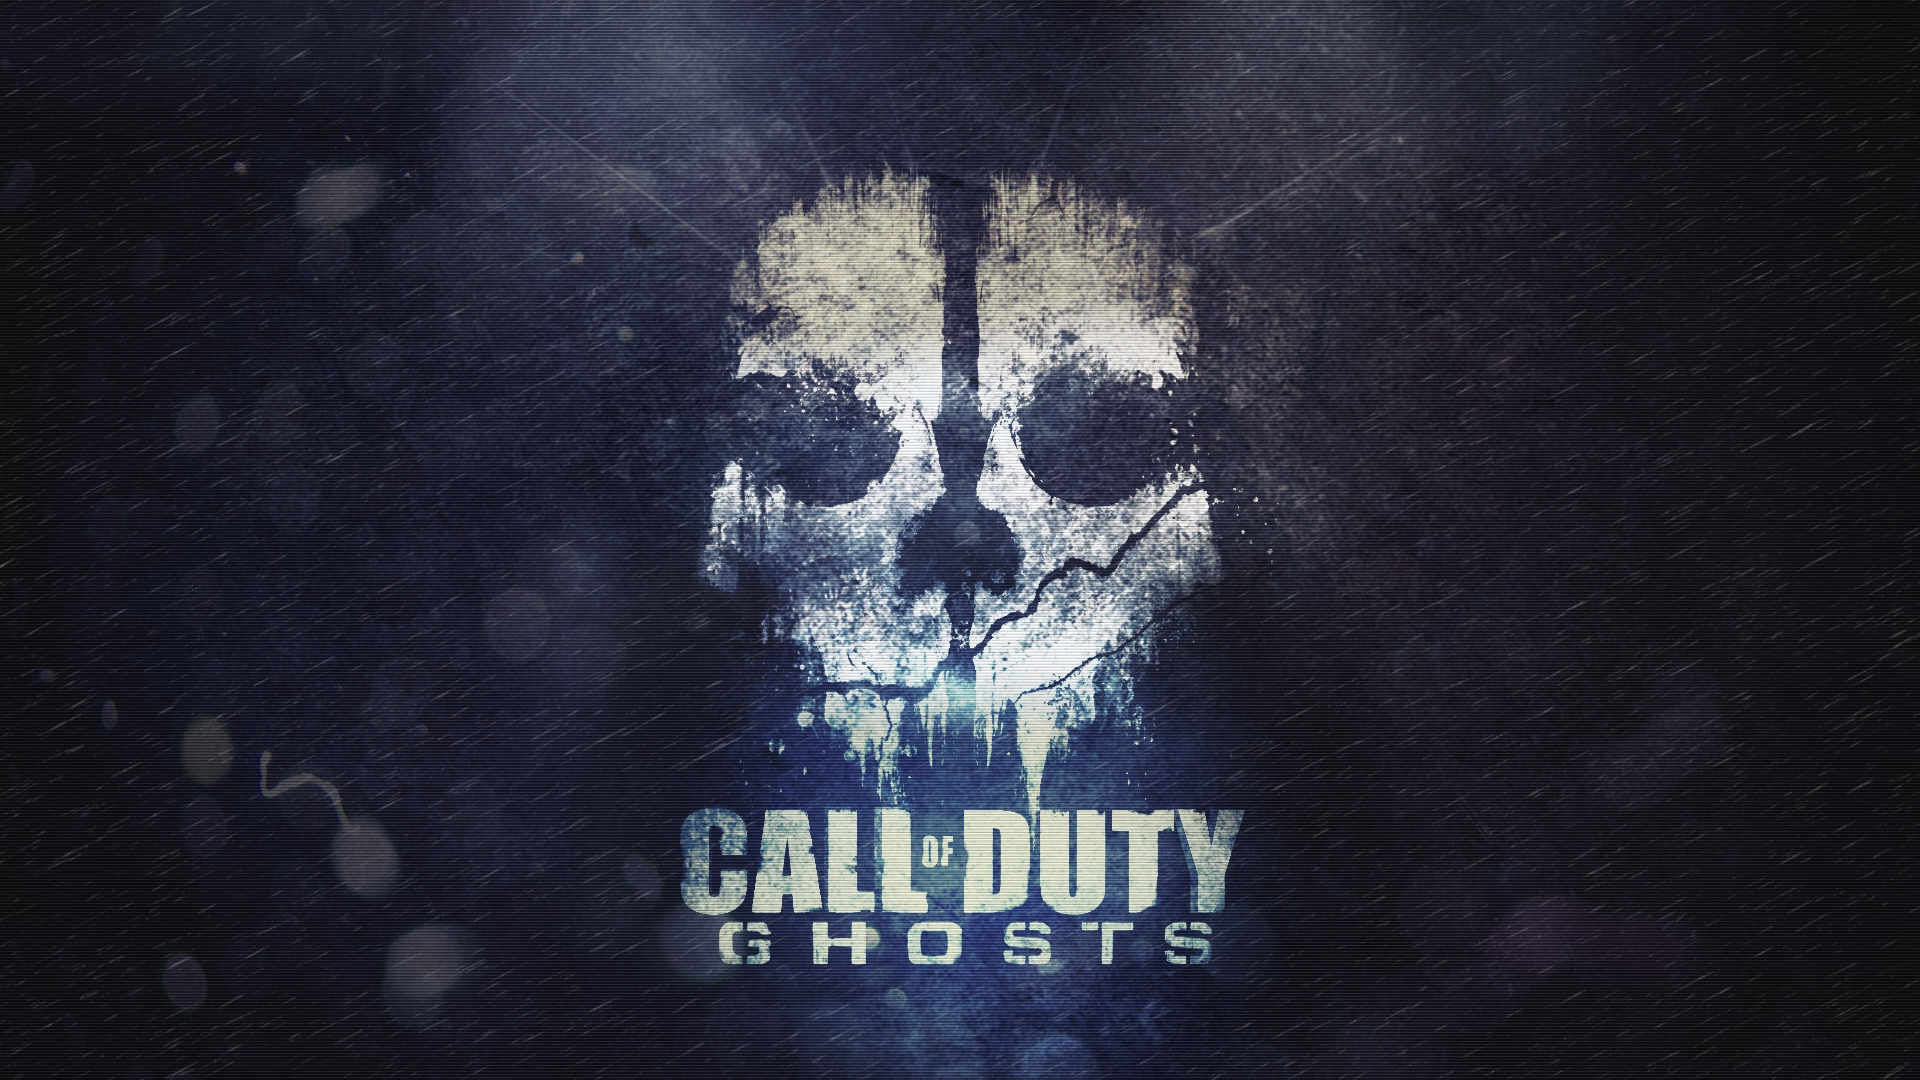 cod ghosts skull full hd wallpaper and background image | 1920x1080